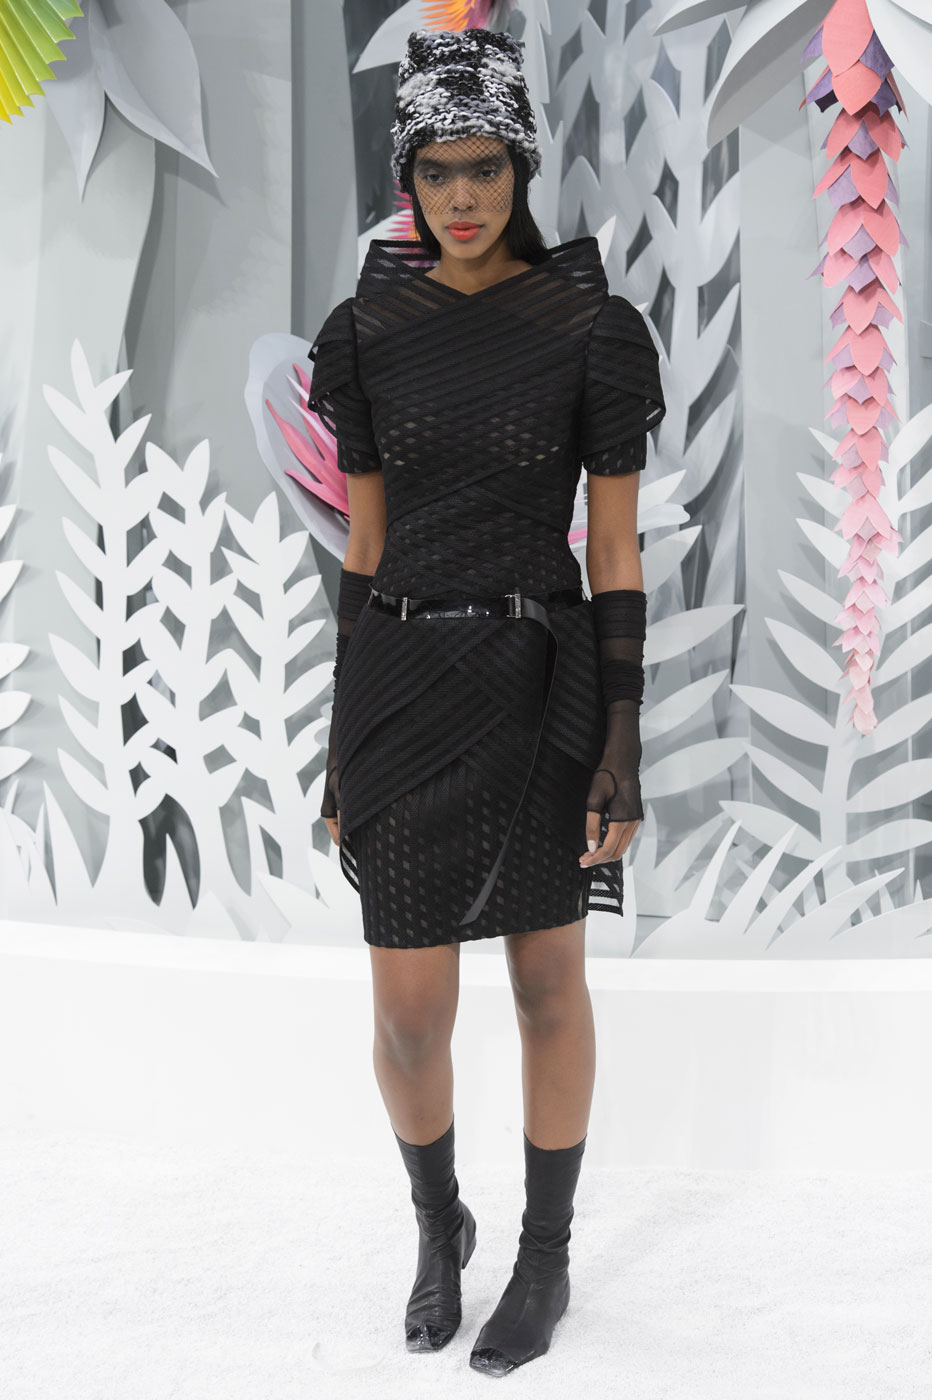 Chanel-fashion-runway-show-haute-couture-paris-spring-summer-2015-the-impression-080